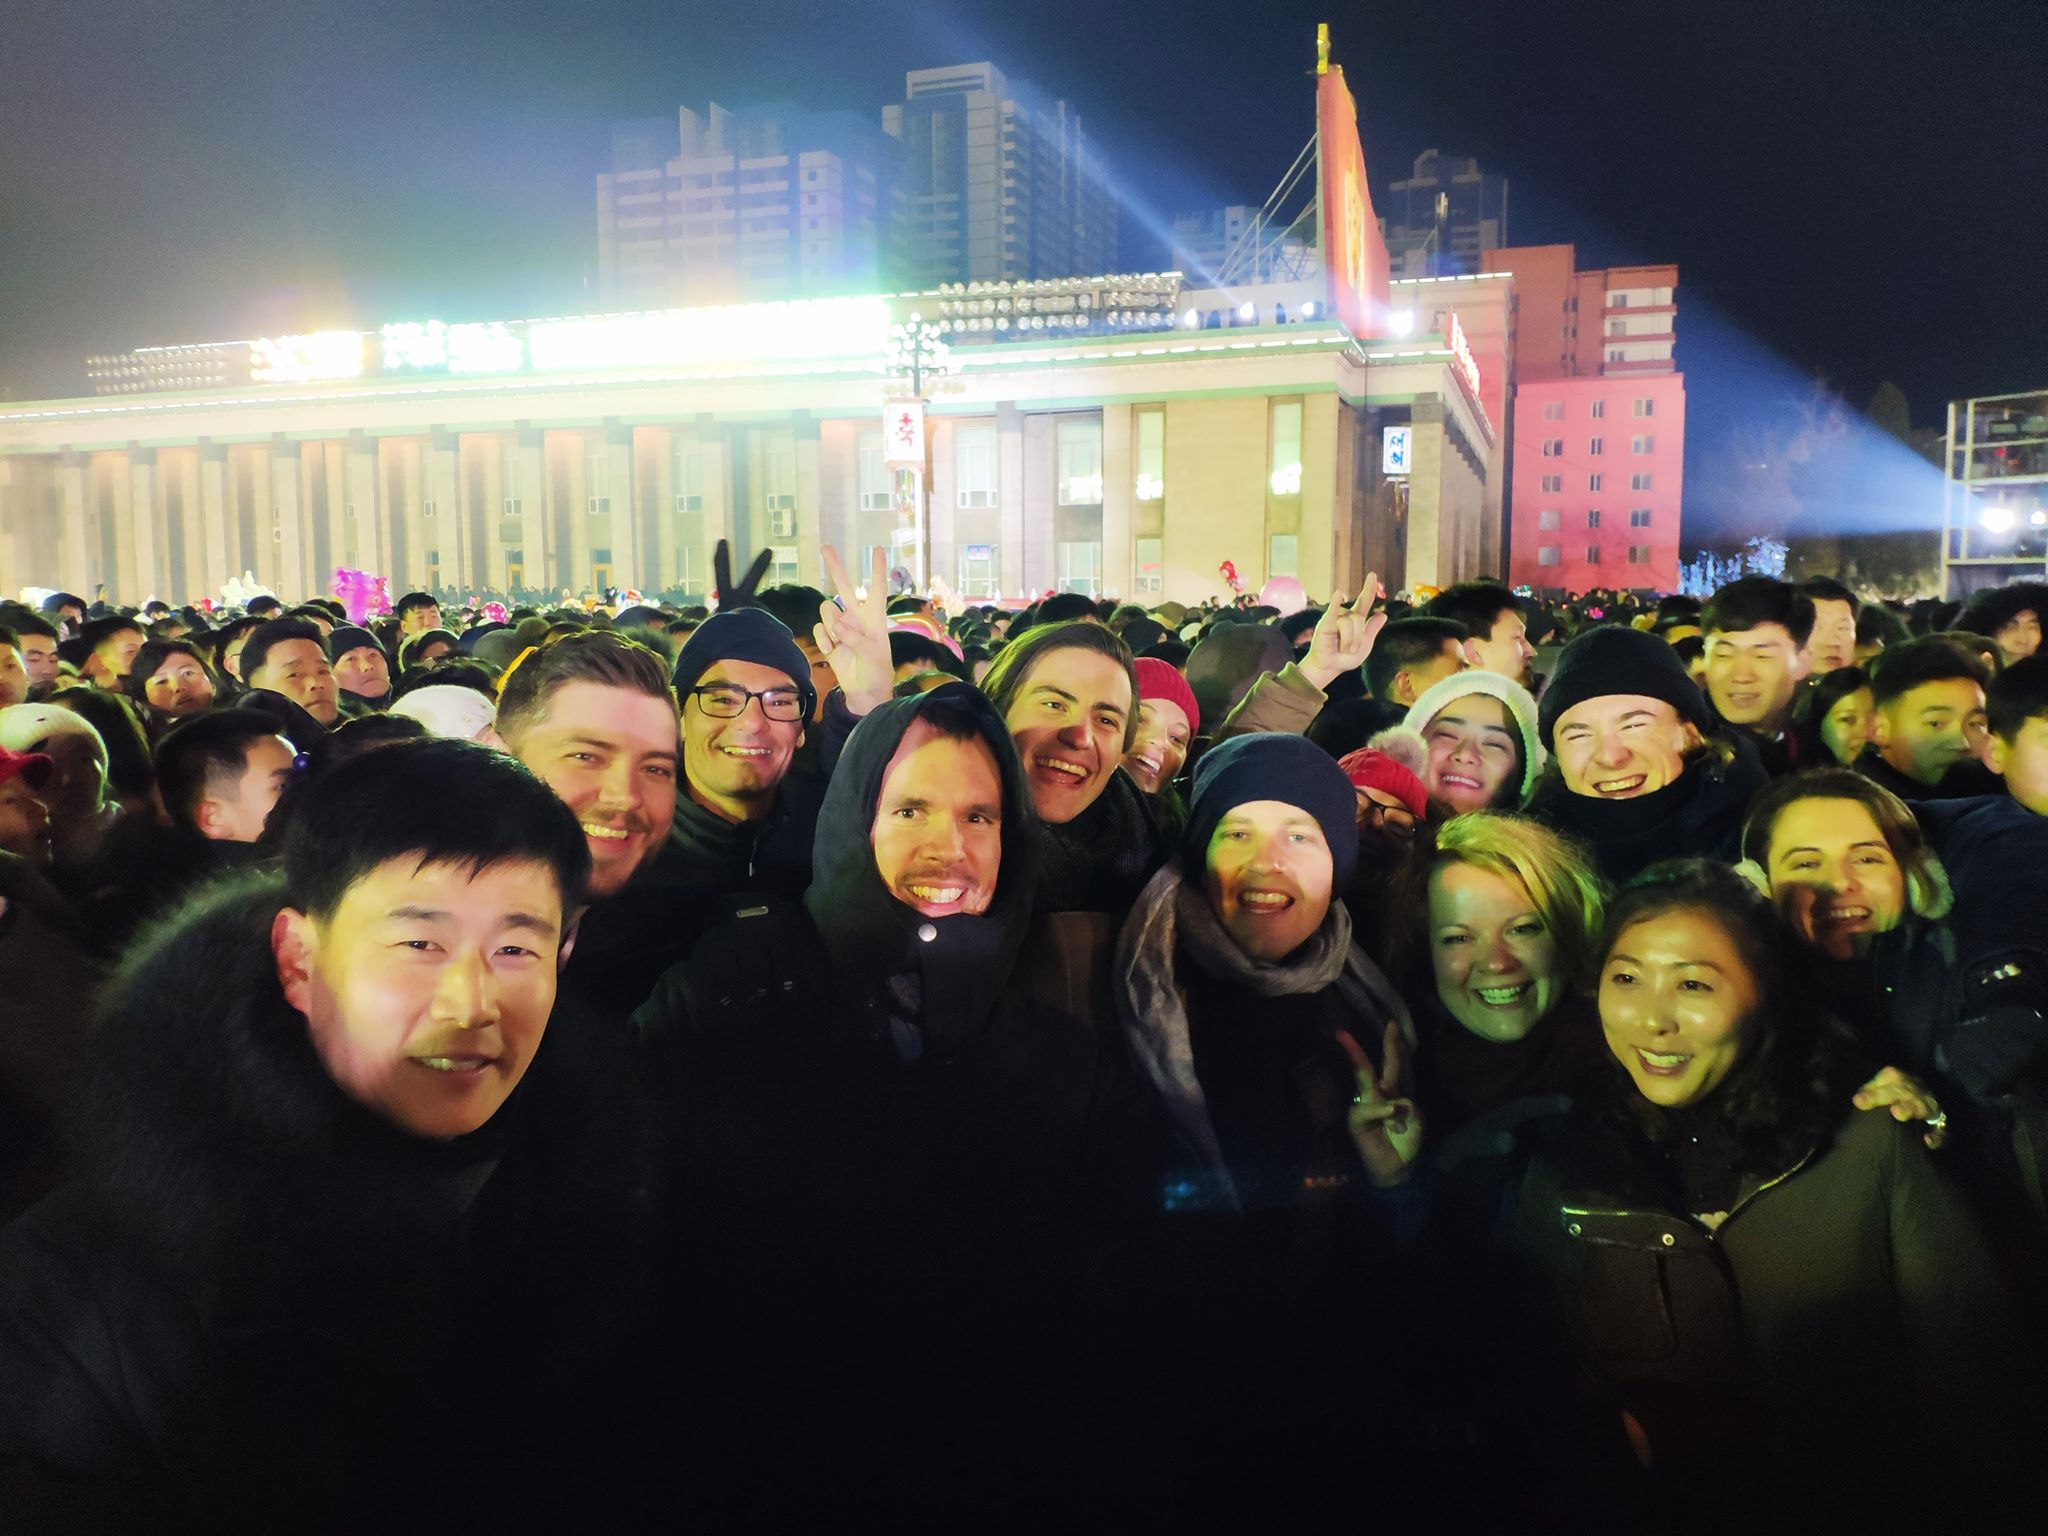 Our group celebrating New Years alongside Koreans in Pyongyang